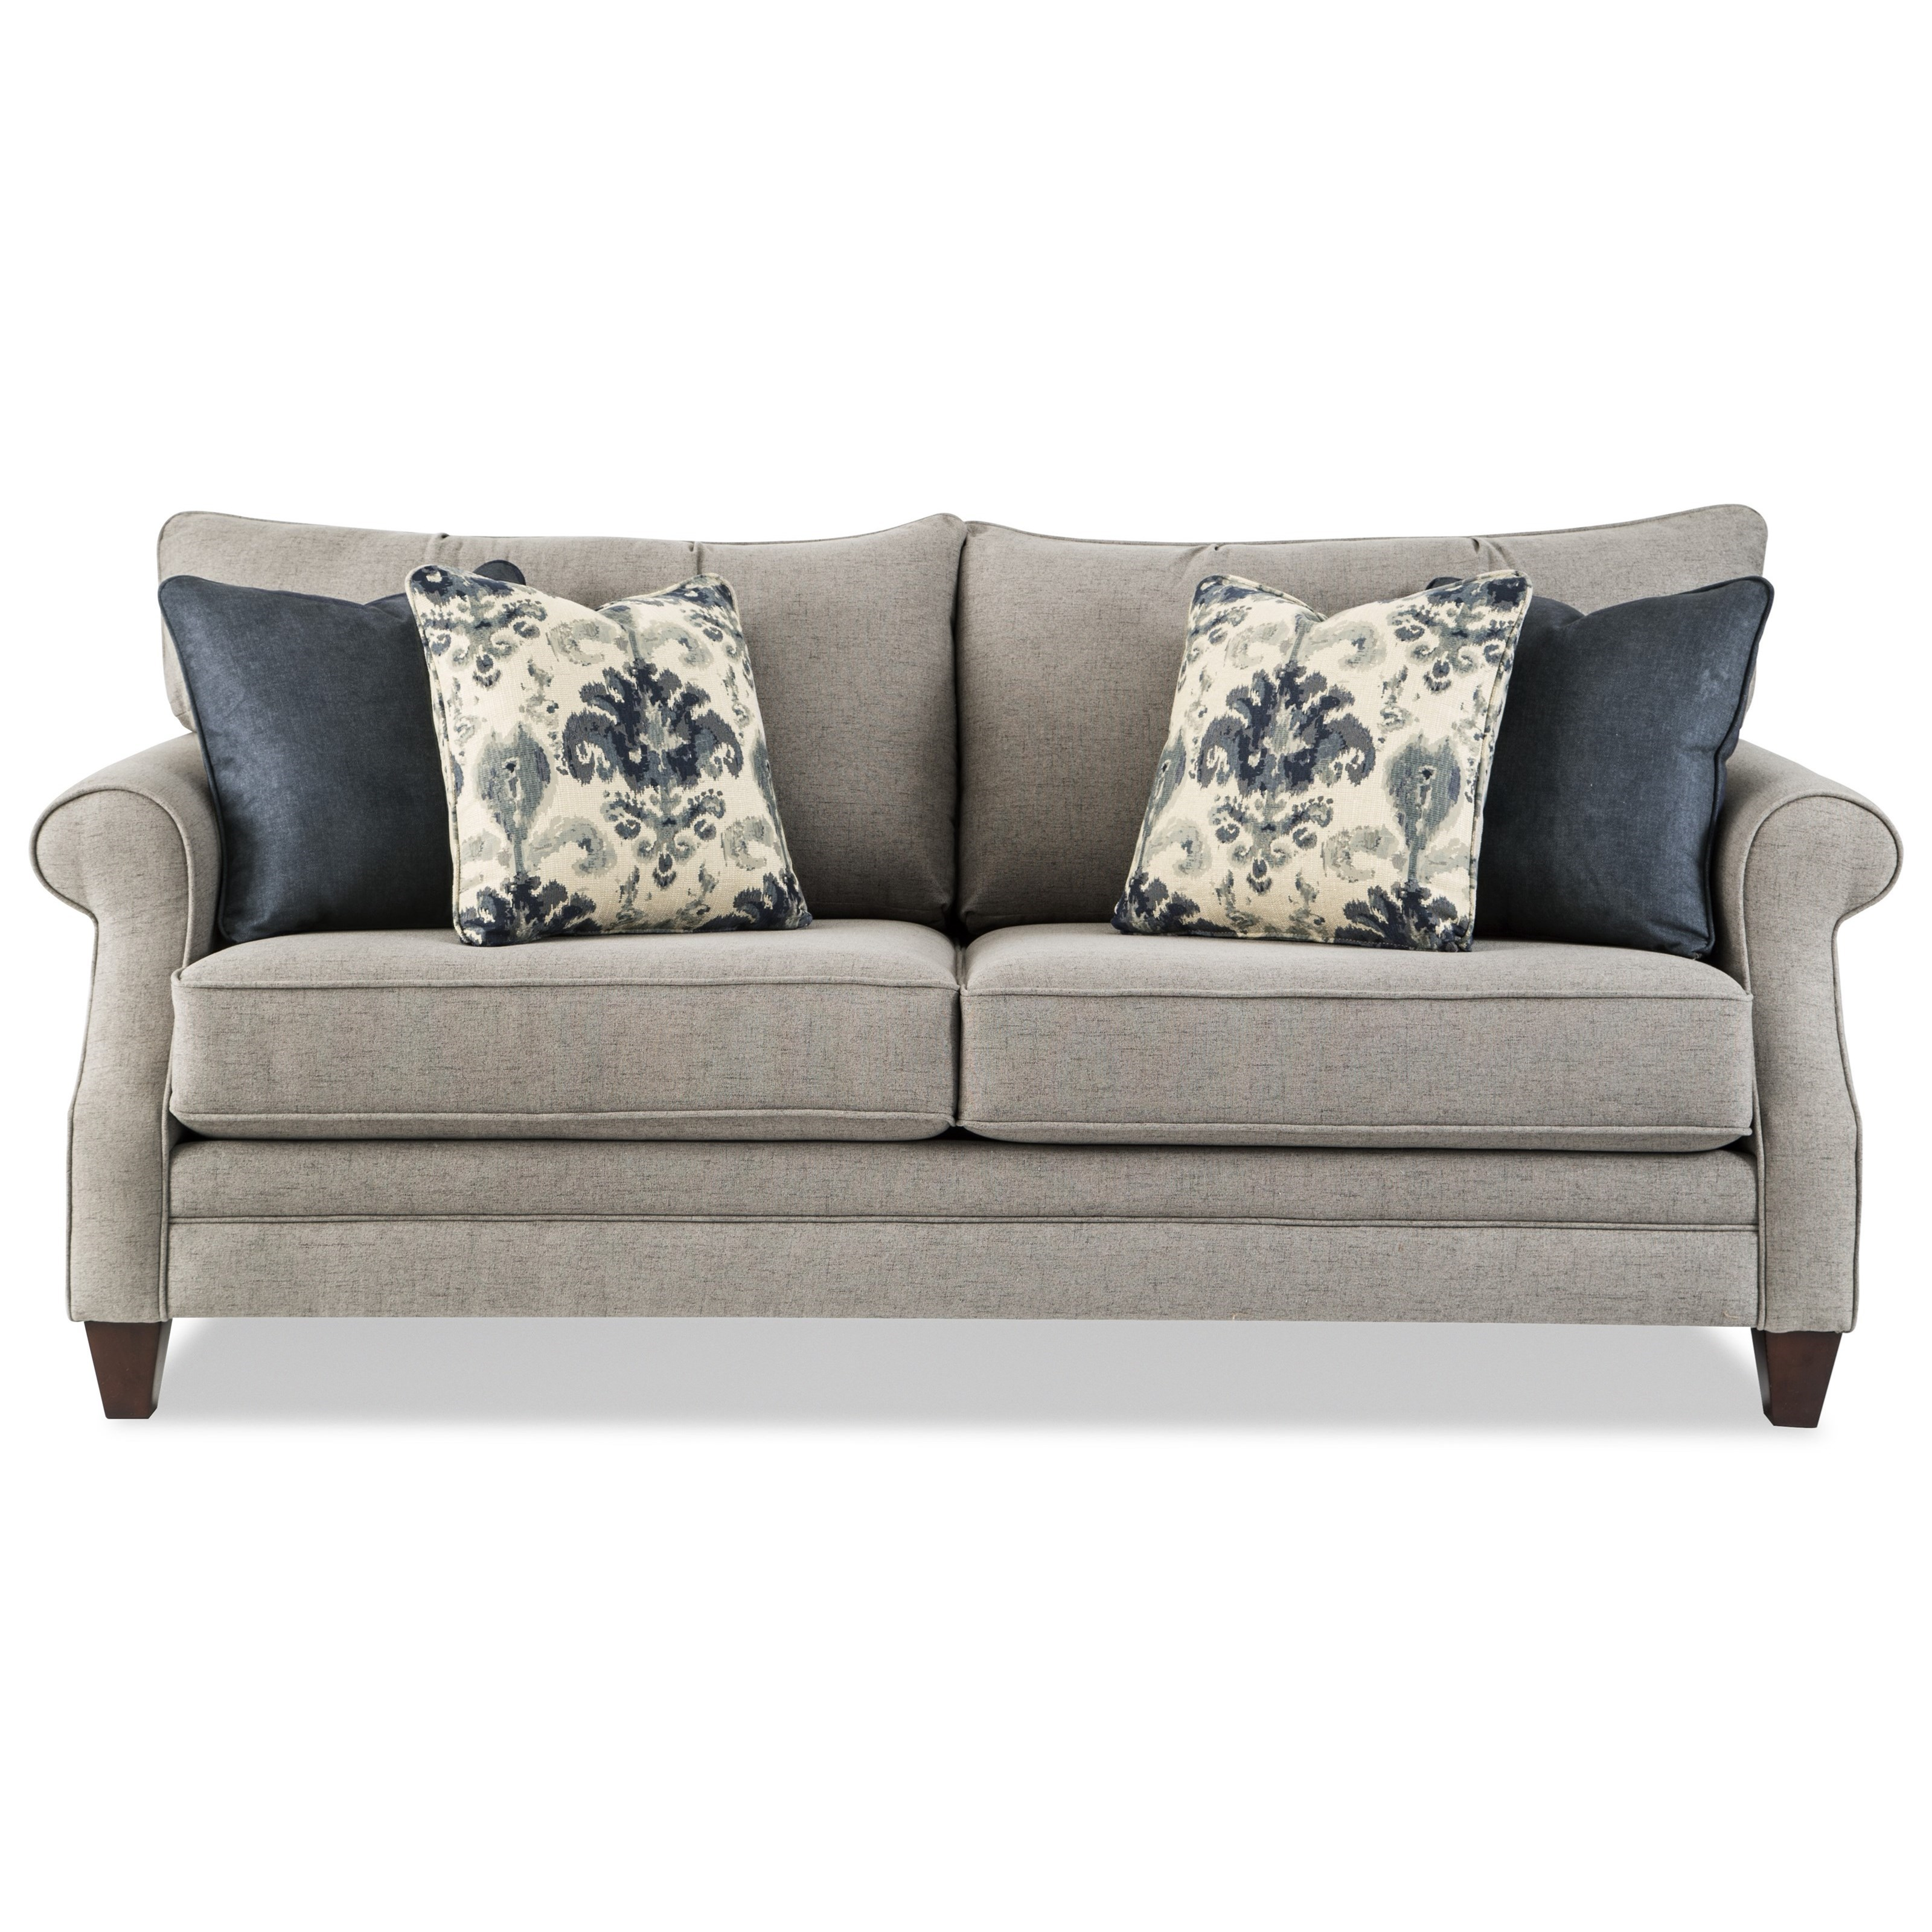 Craftmaster 776850 Transitional Queen Sofa Sleeper With